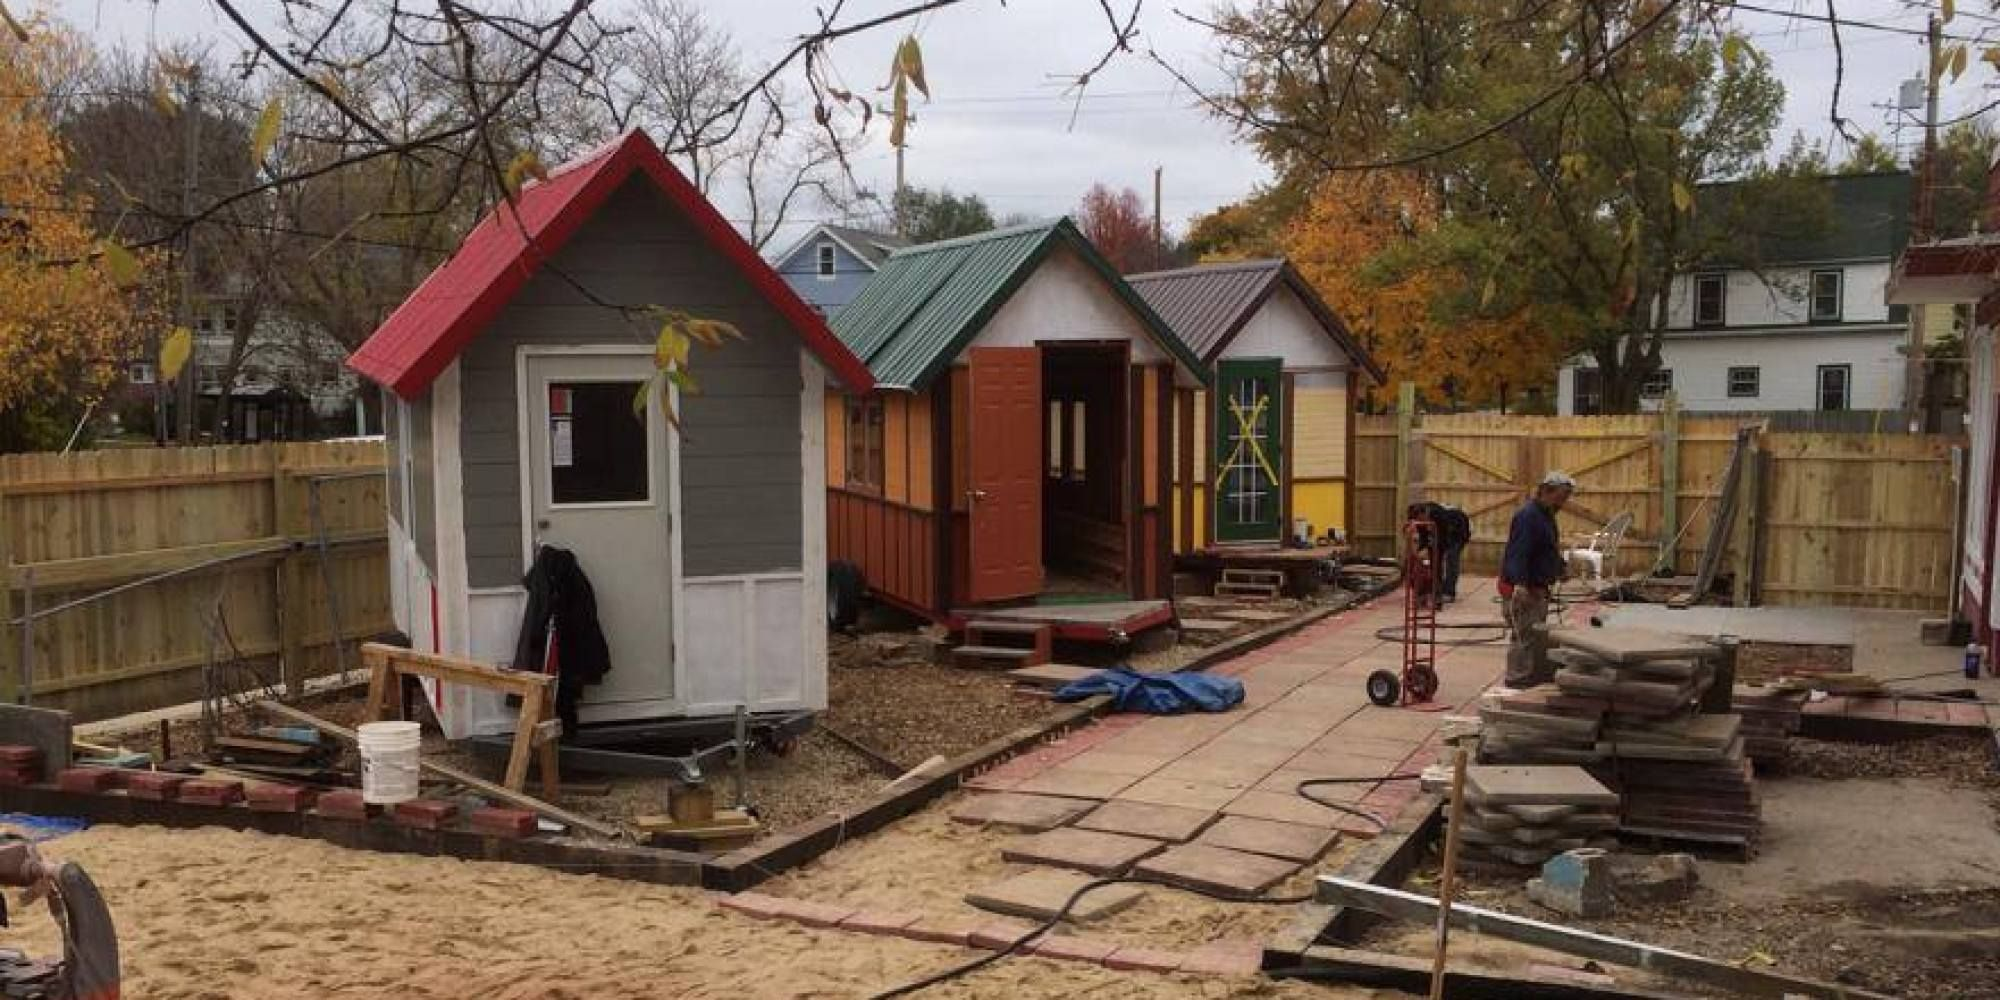 Tiny Houses For Homeless People Put Roofs Over Heads In